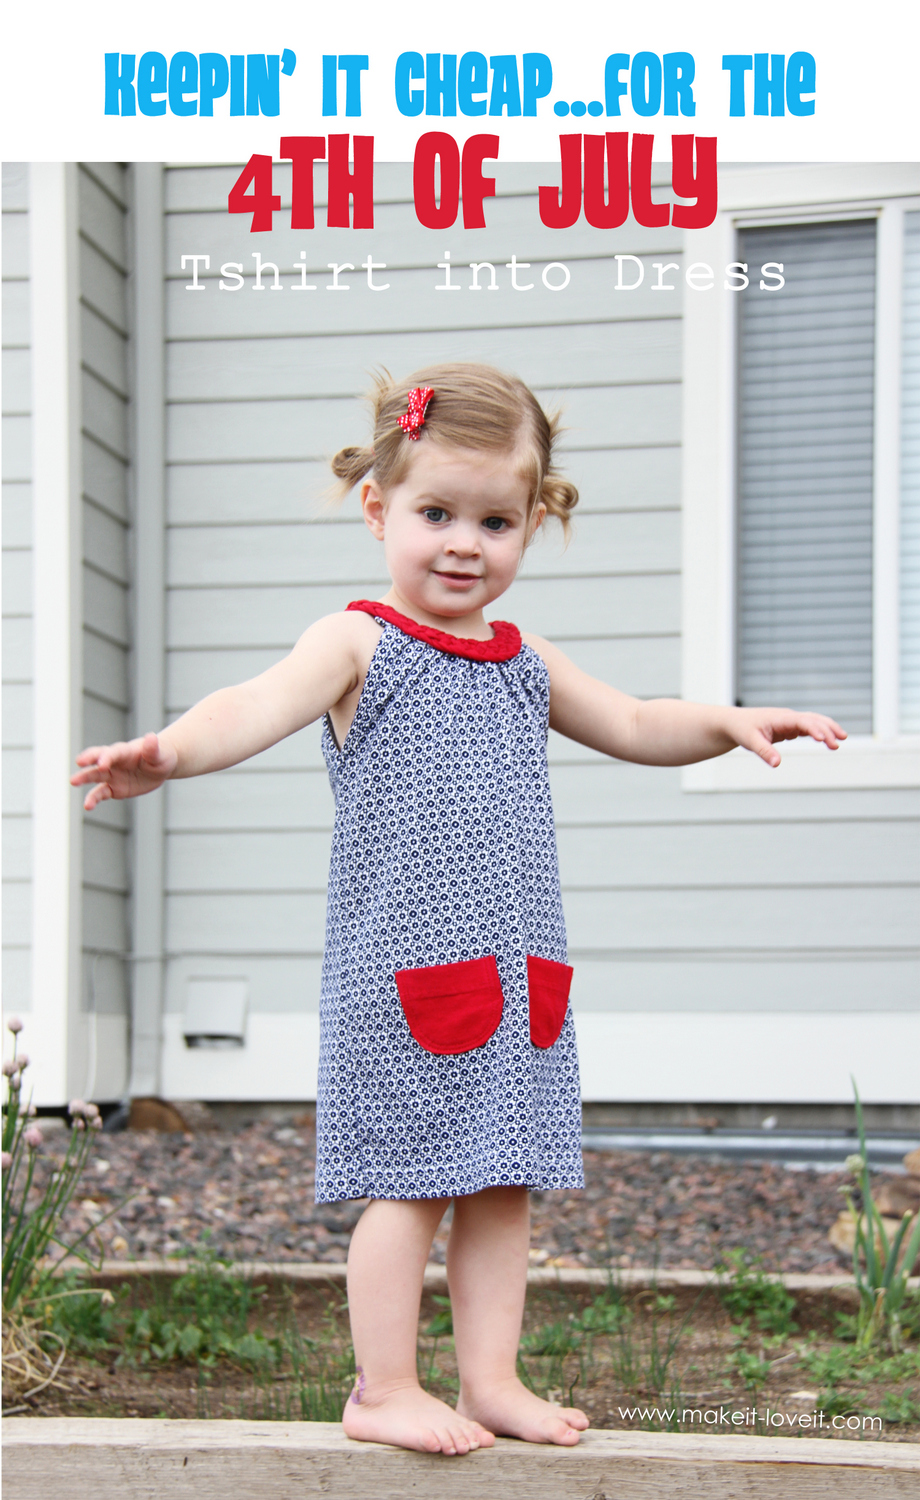 4th july tshirt into dress-002